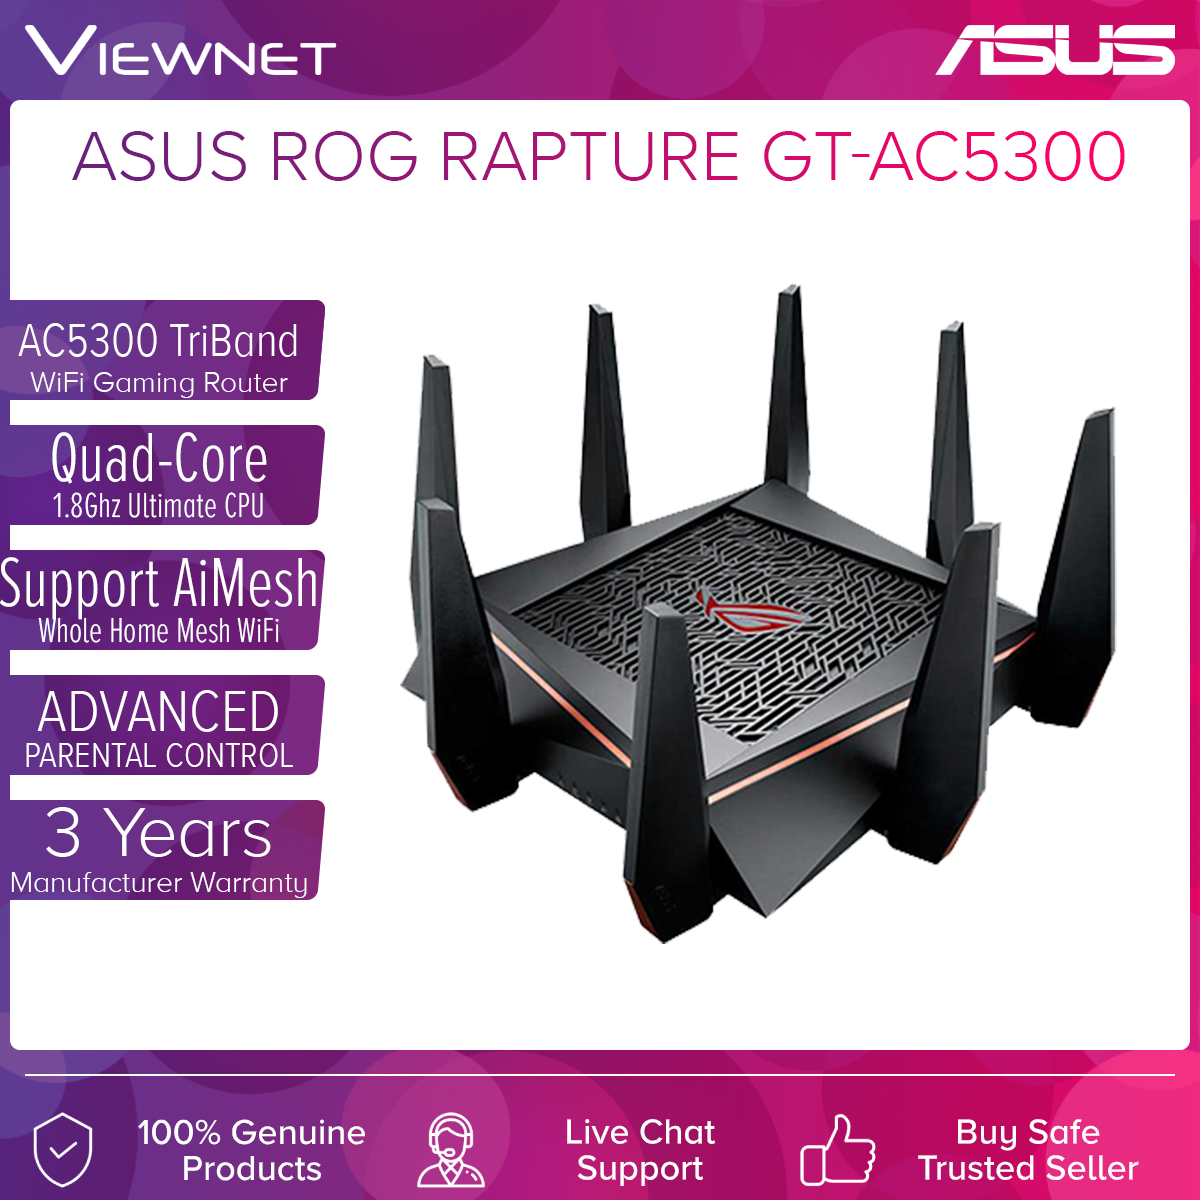 Asus ROG Rapture GT-AC5300 AC5300 Tri-Band WiFi Gaming Router